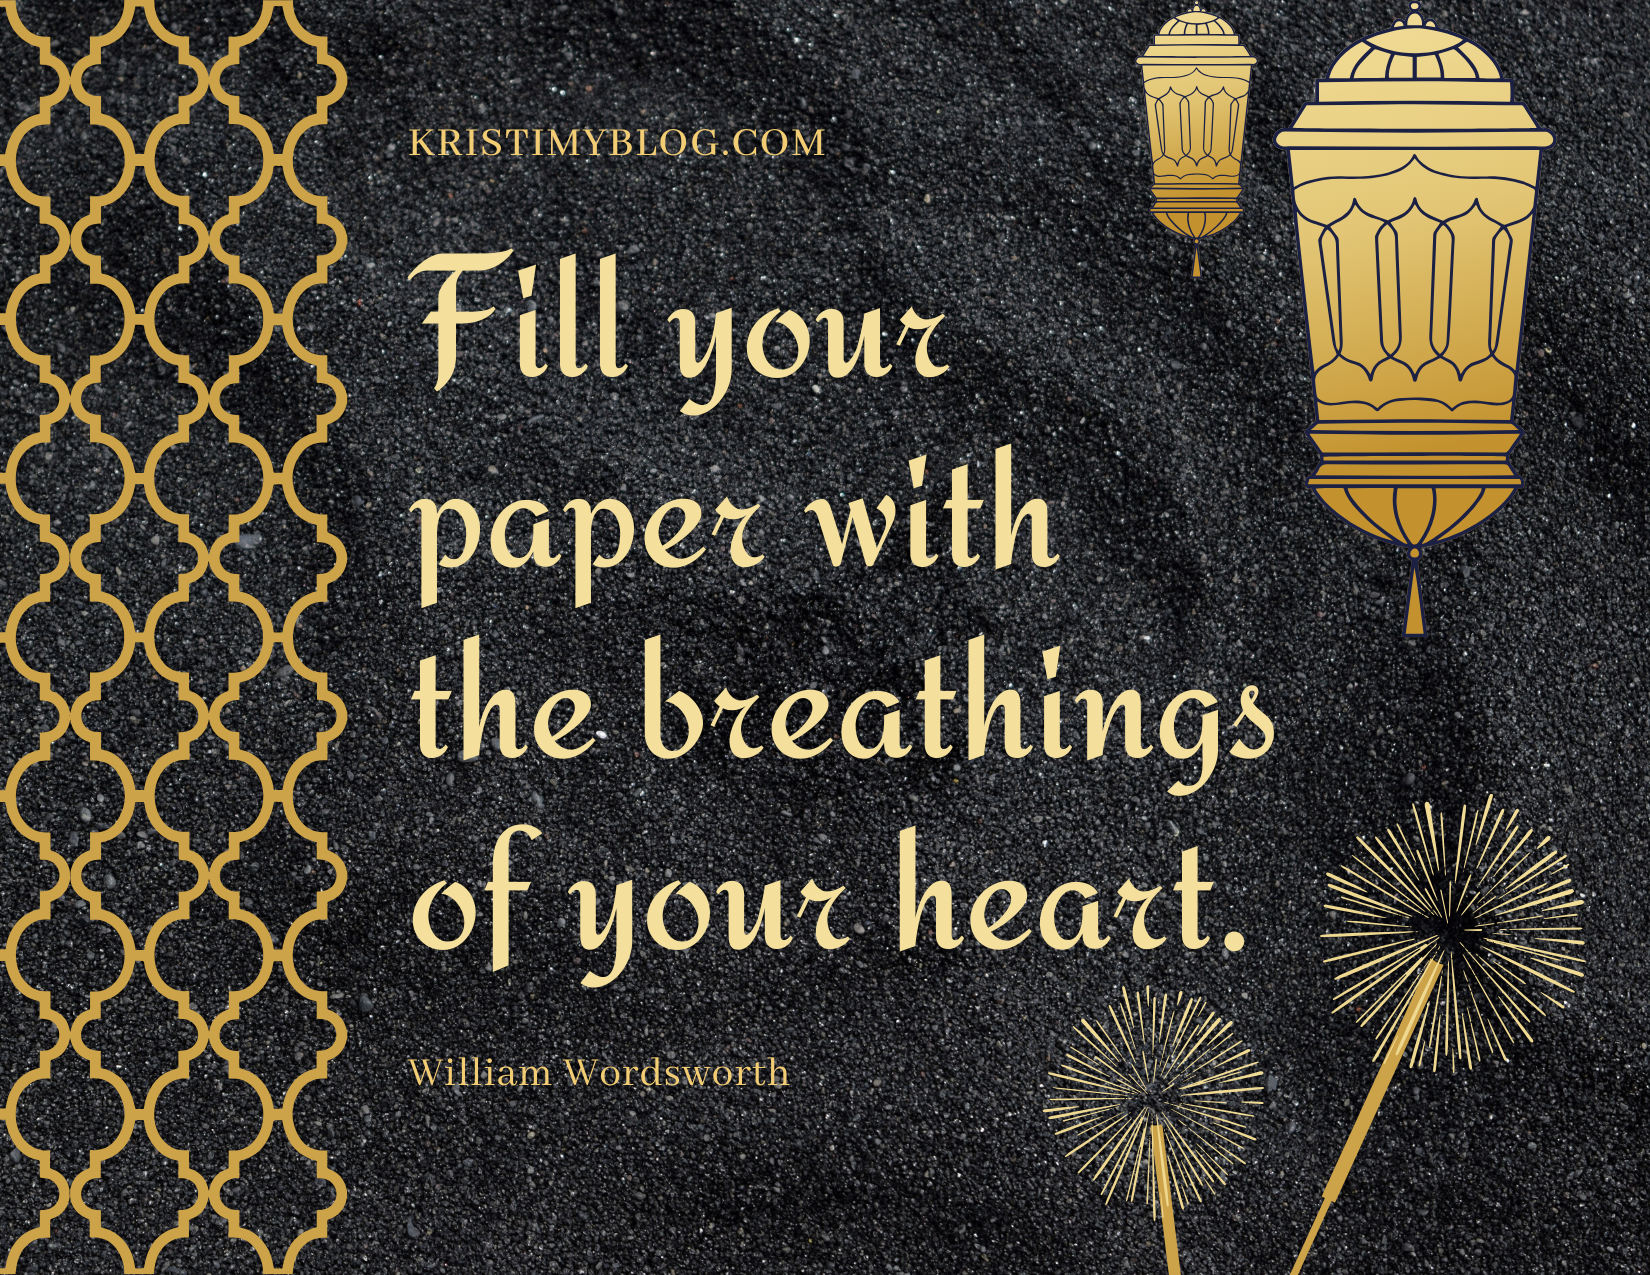 """Fill your paper with the breathings of your heart."" -William Wordsworth"